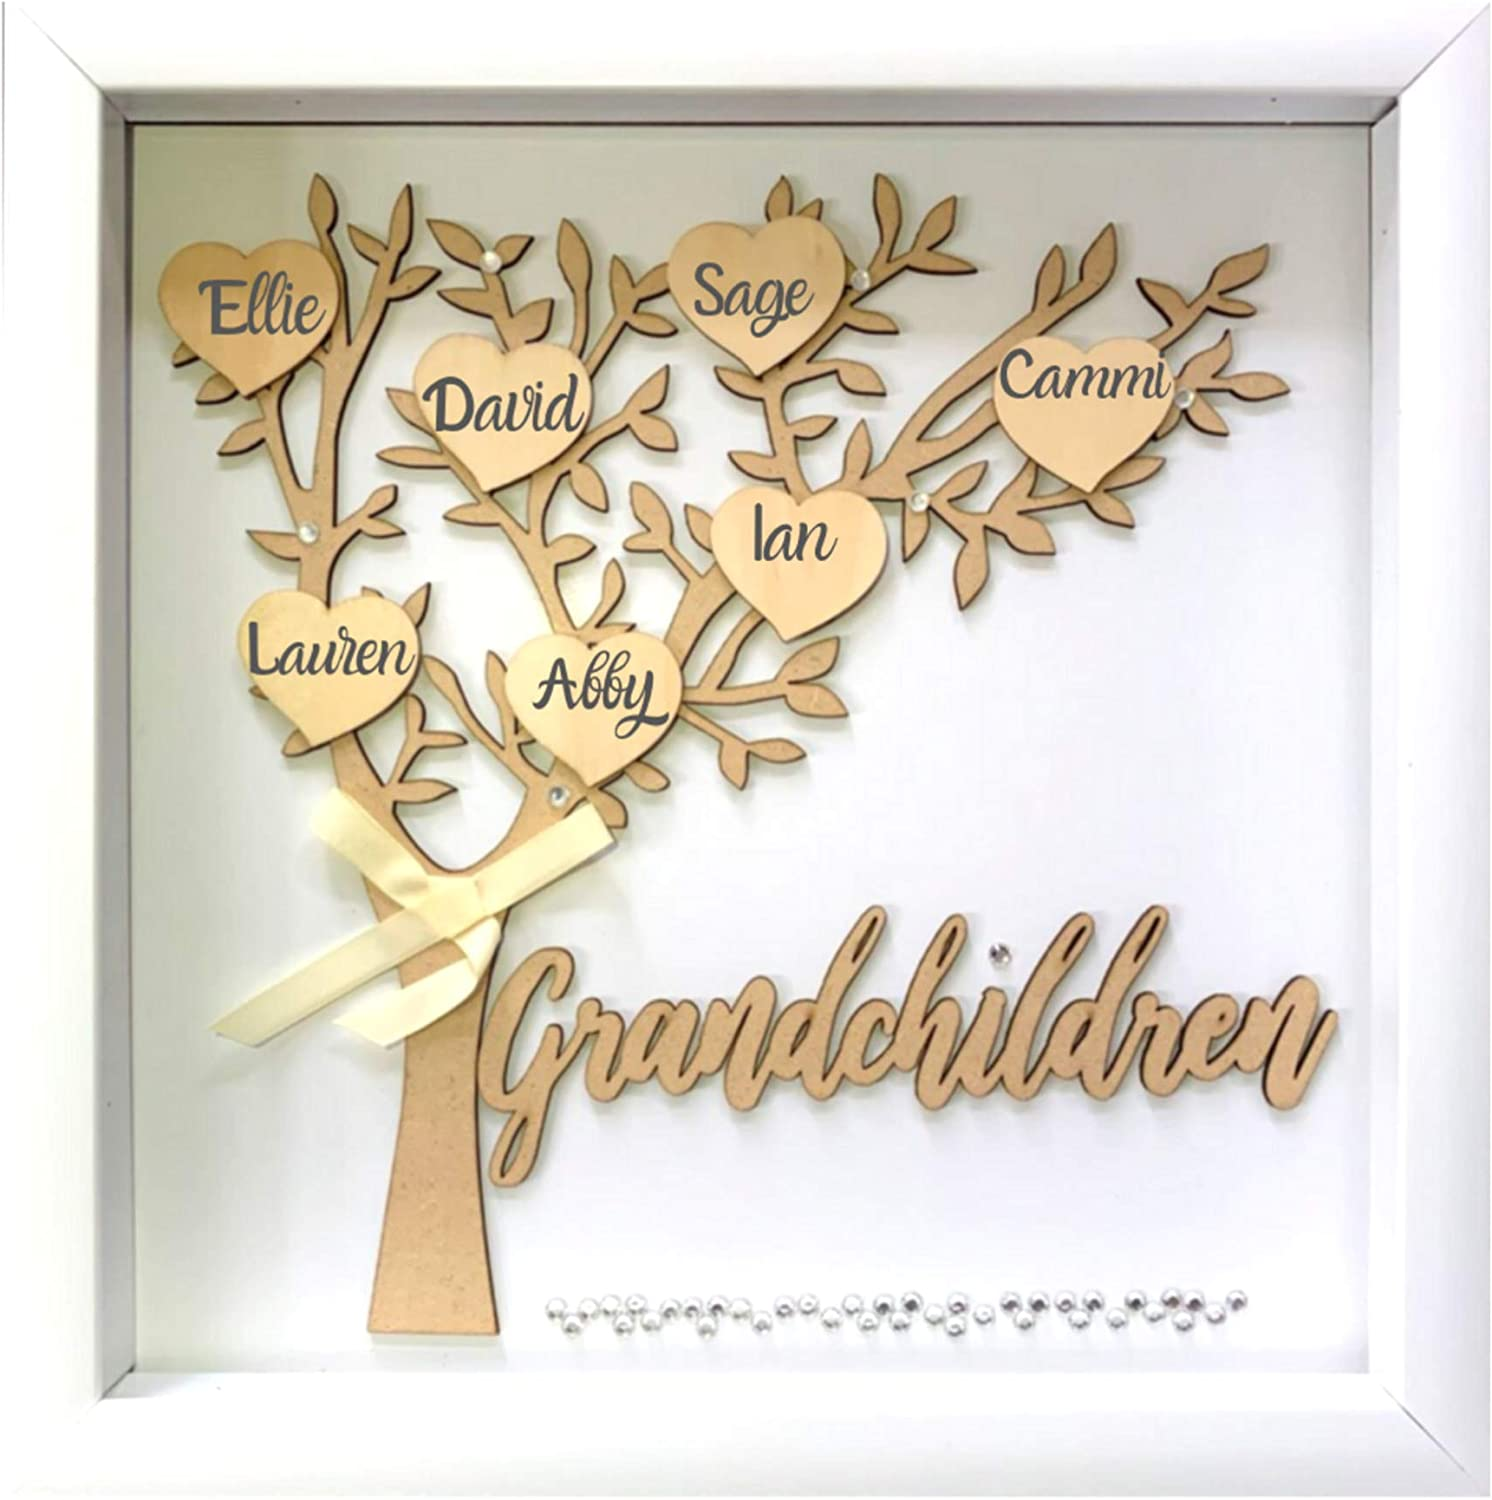 Amazon Com Tasse Verre 12x12 Grandchildren Shadow Box Kit Family Tree Gift For Grandparents Grandma Grandpa With 7 Hearts And 40 Gems Gift For Grandparents Grandchild Grandkid Nana Mimi Mothers Day